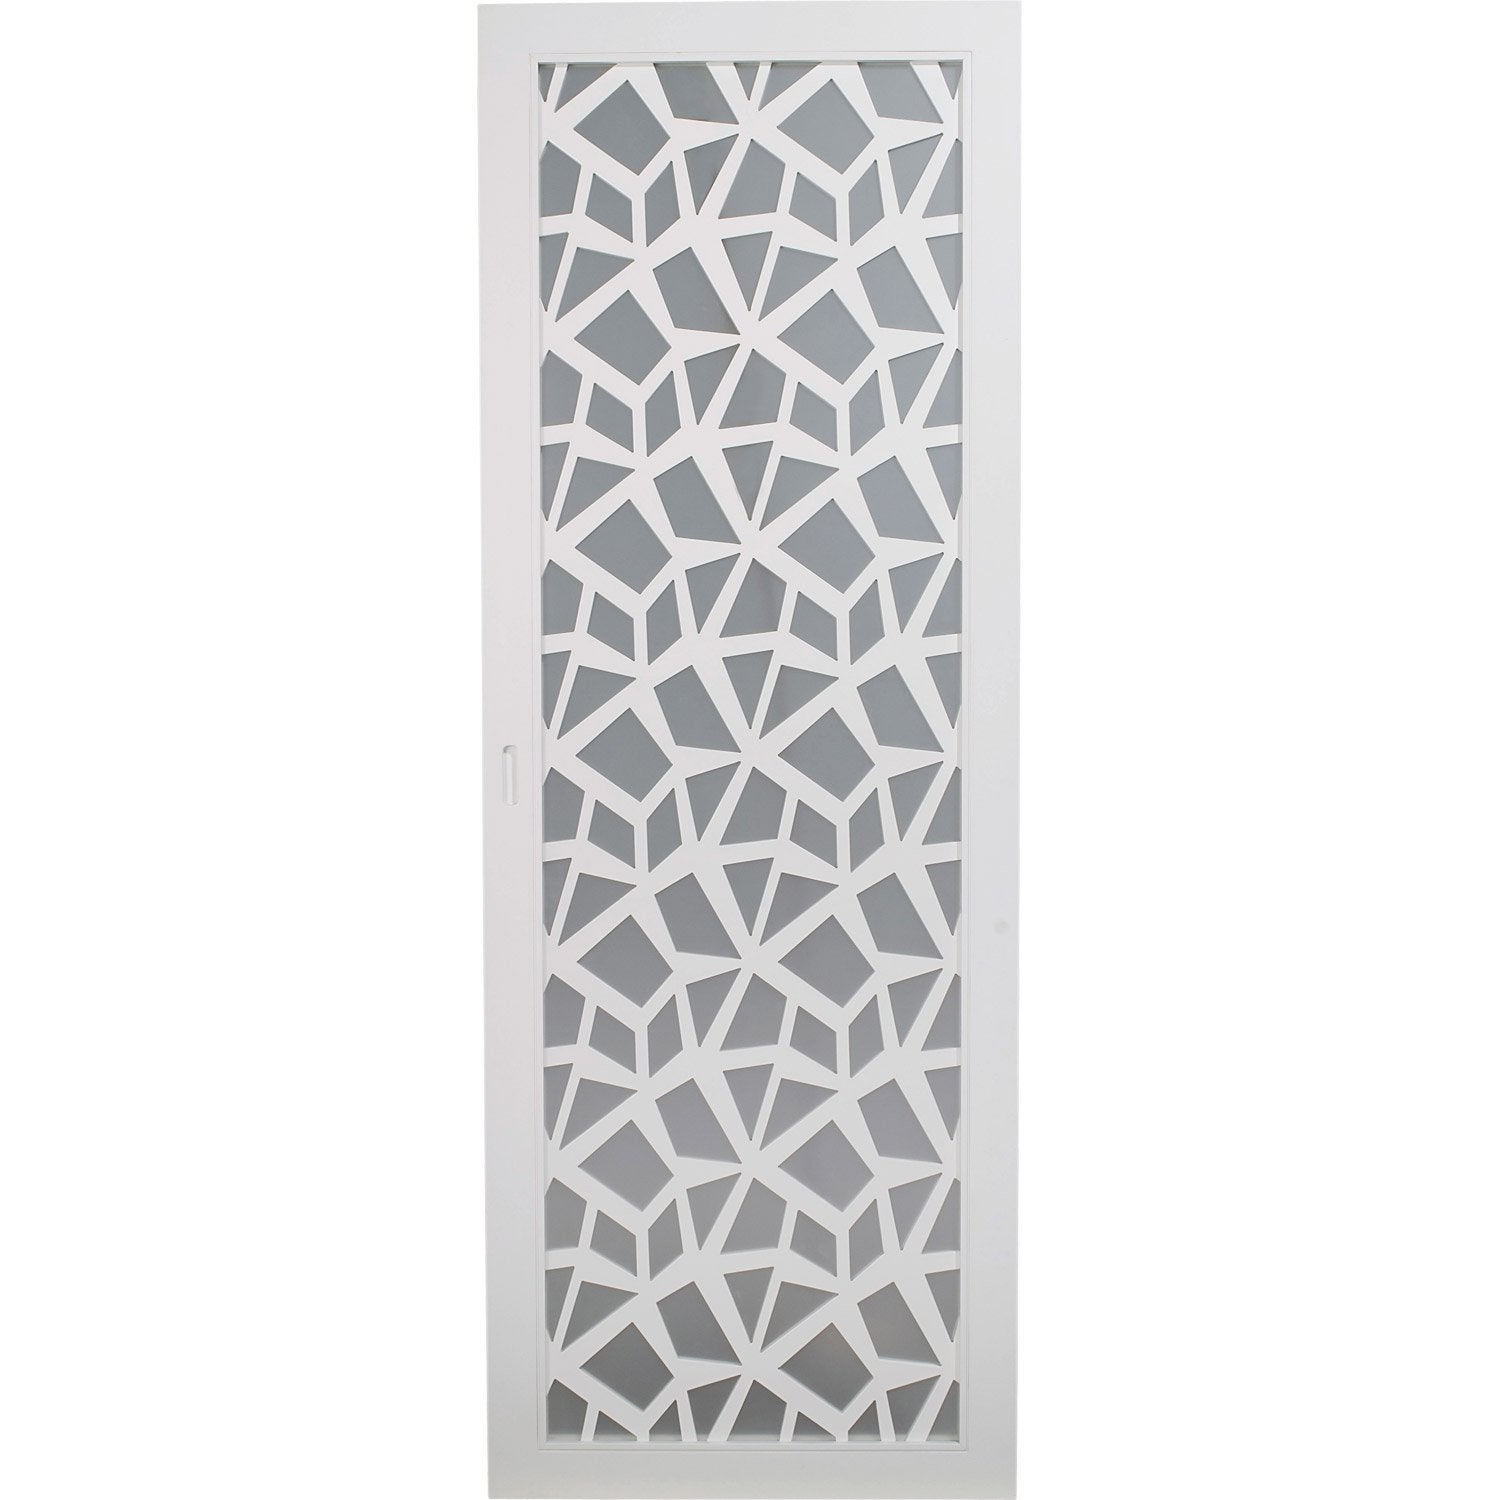 Porte coulissante plaqu blanc crash artens 204 x 73 cm for Porte en verre leroy merlin